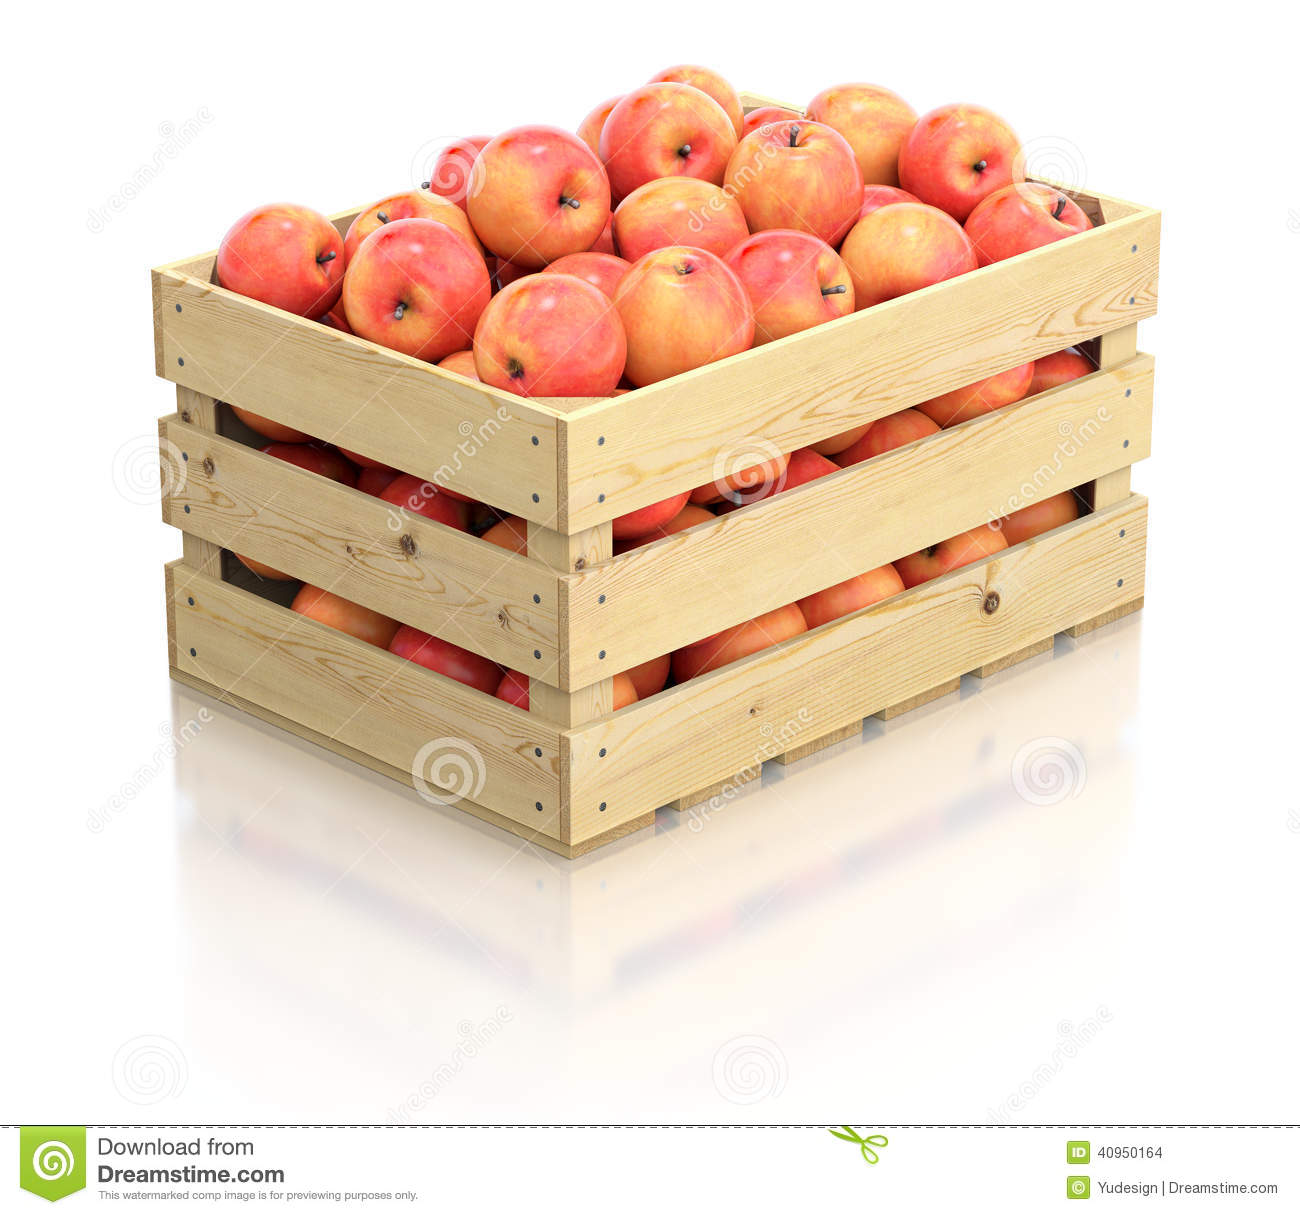 red apples in the wooden crate stock illustration image 40950164. Black Bedroom Furniture Sets. Home Design Ideas